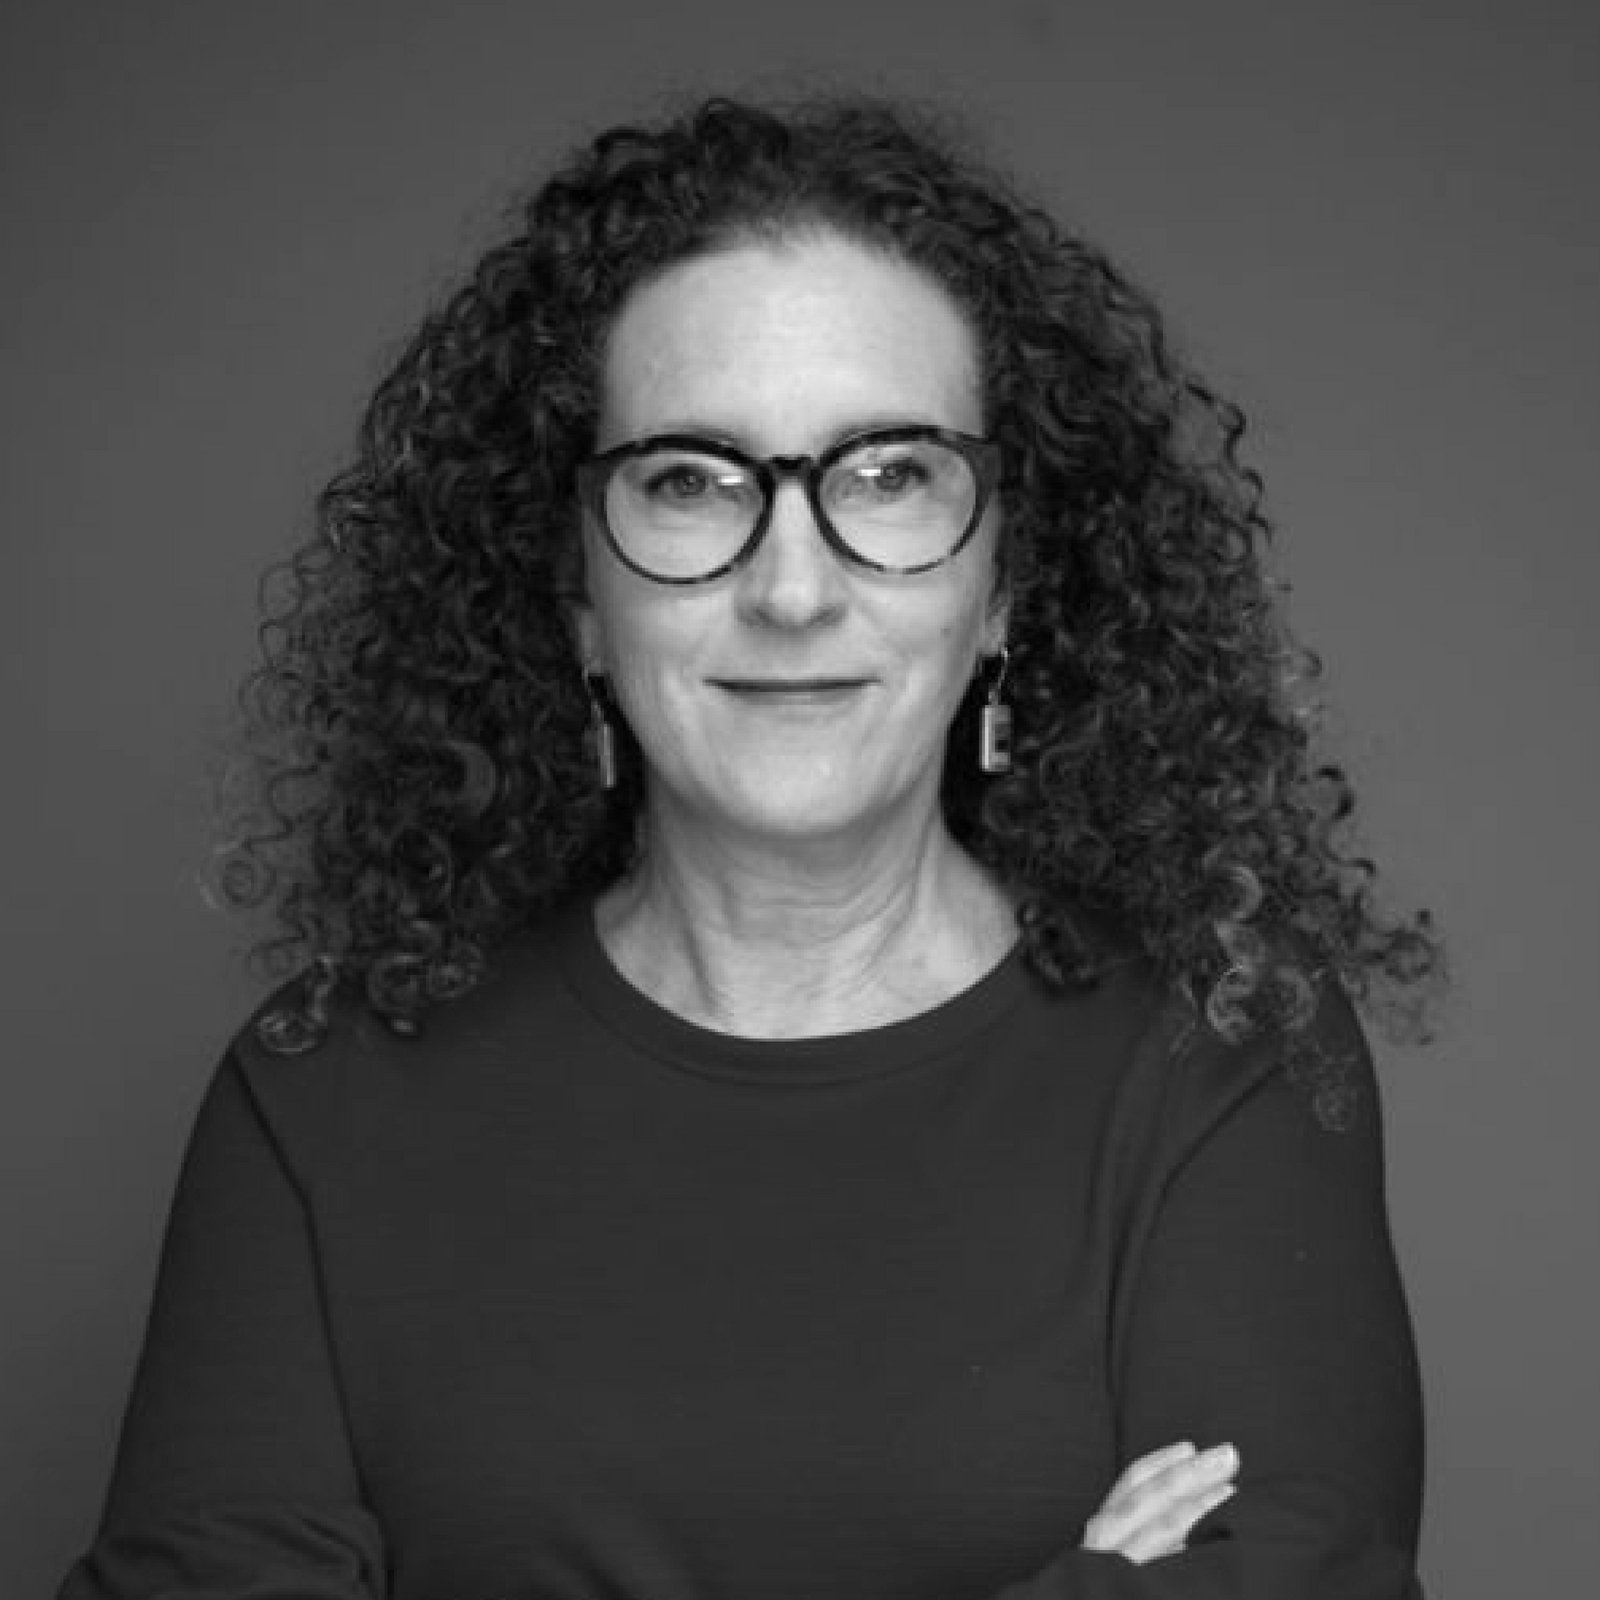 Yehudit Mam - Co-founder & CMO, DADA.nyc